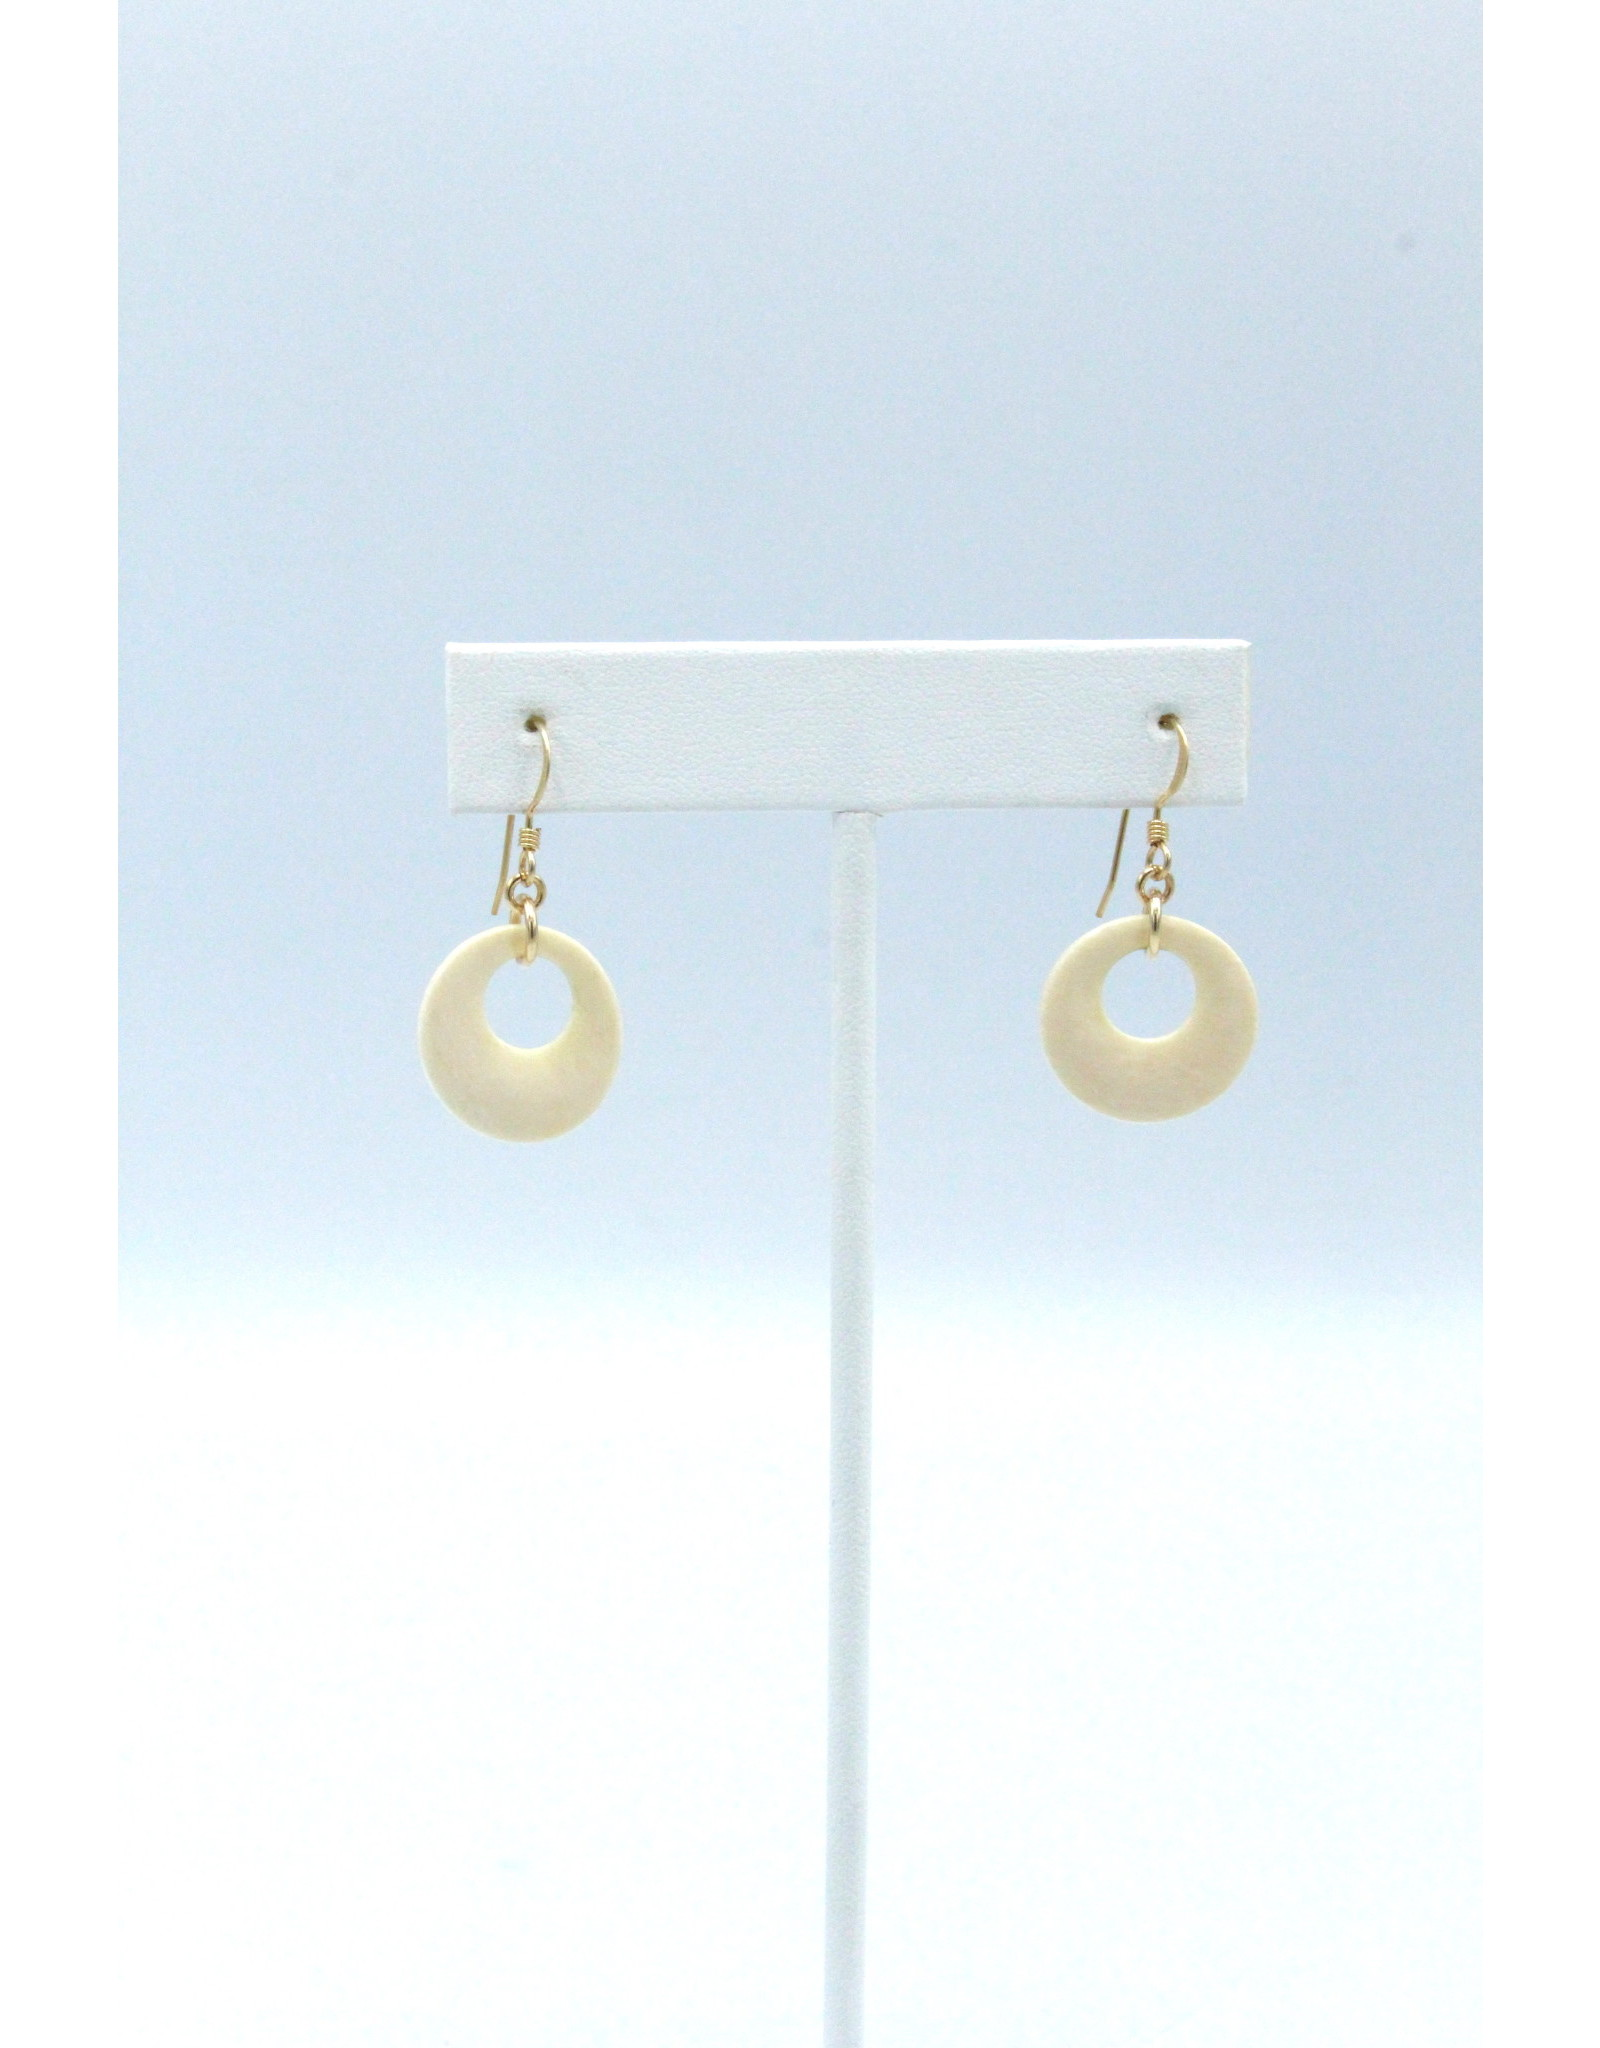 Fossilized Mammoth Ivory Earrings - MD69